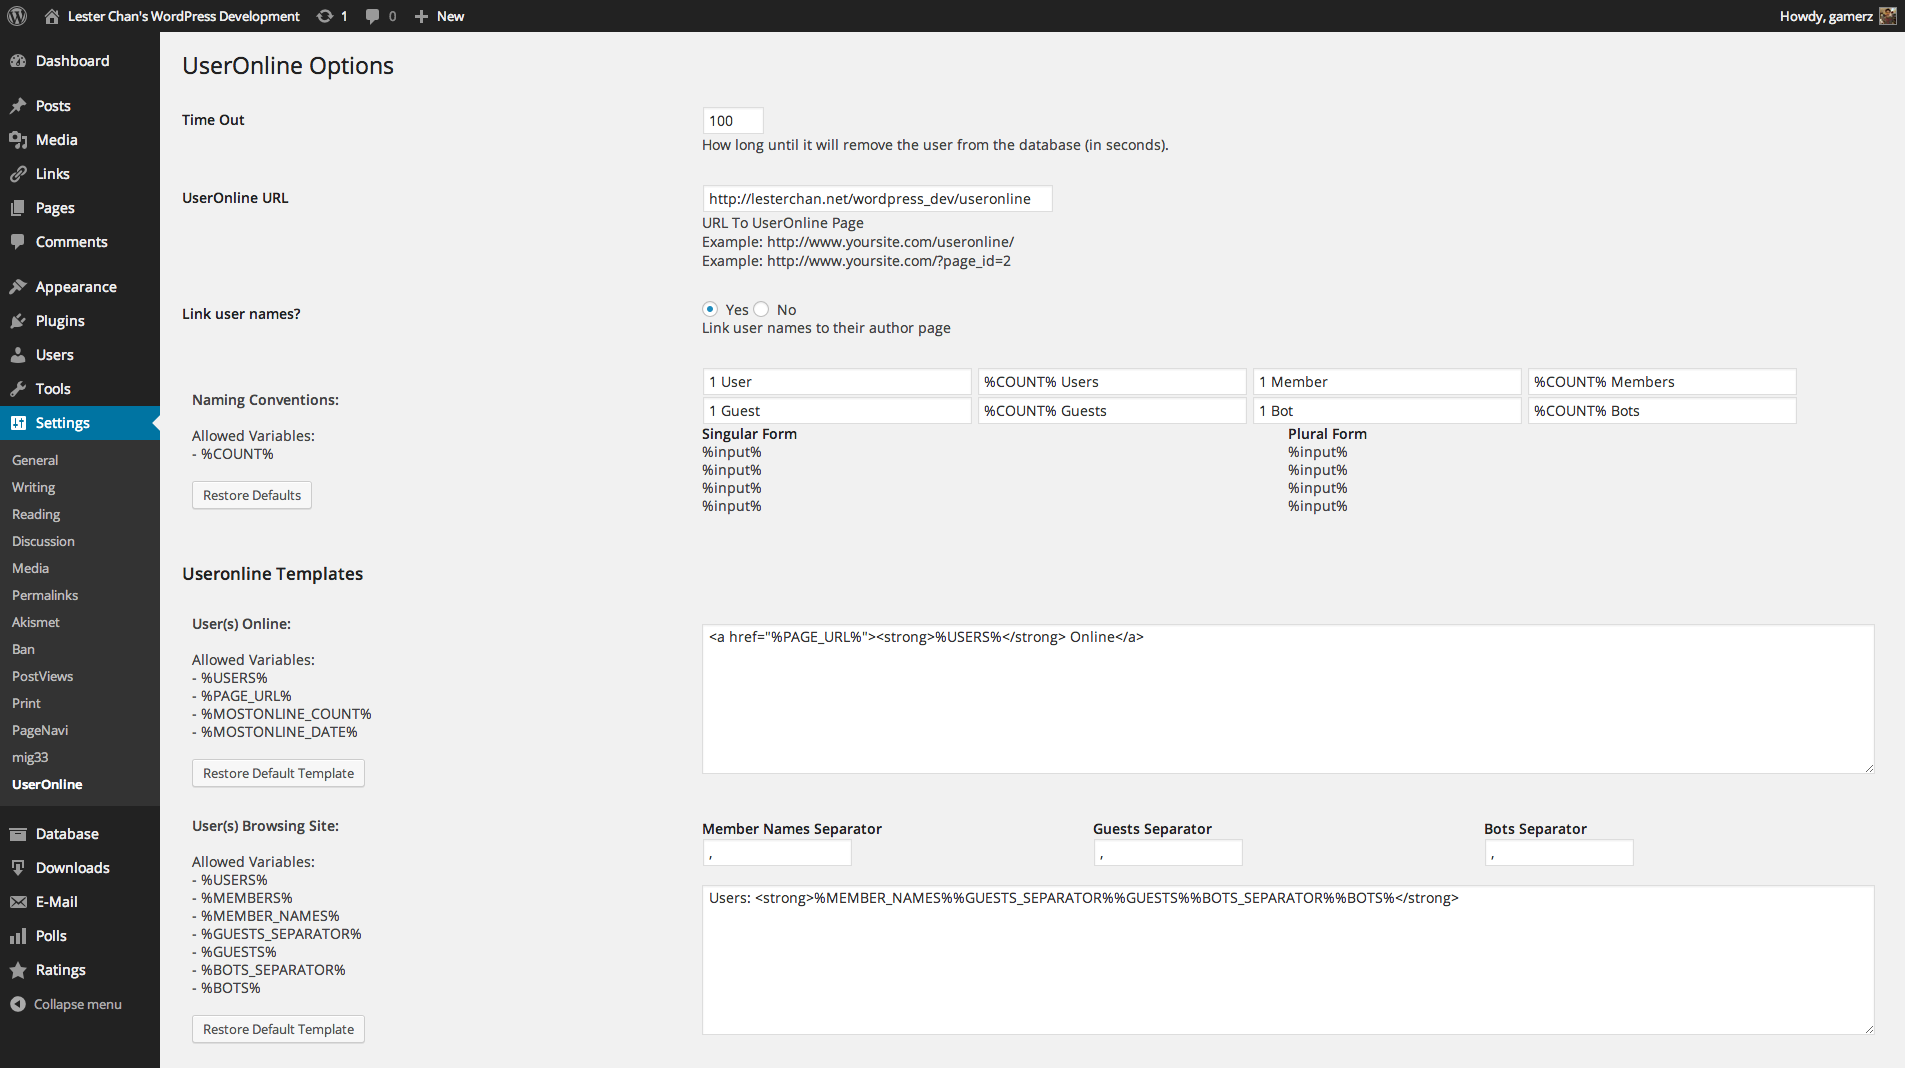 WP-UserOnline's Screenshot: Admin - Settings Page